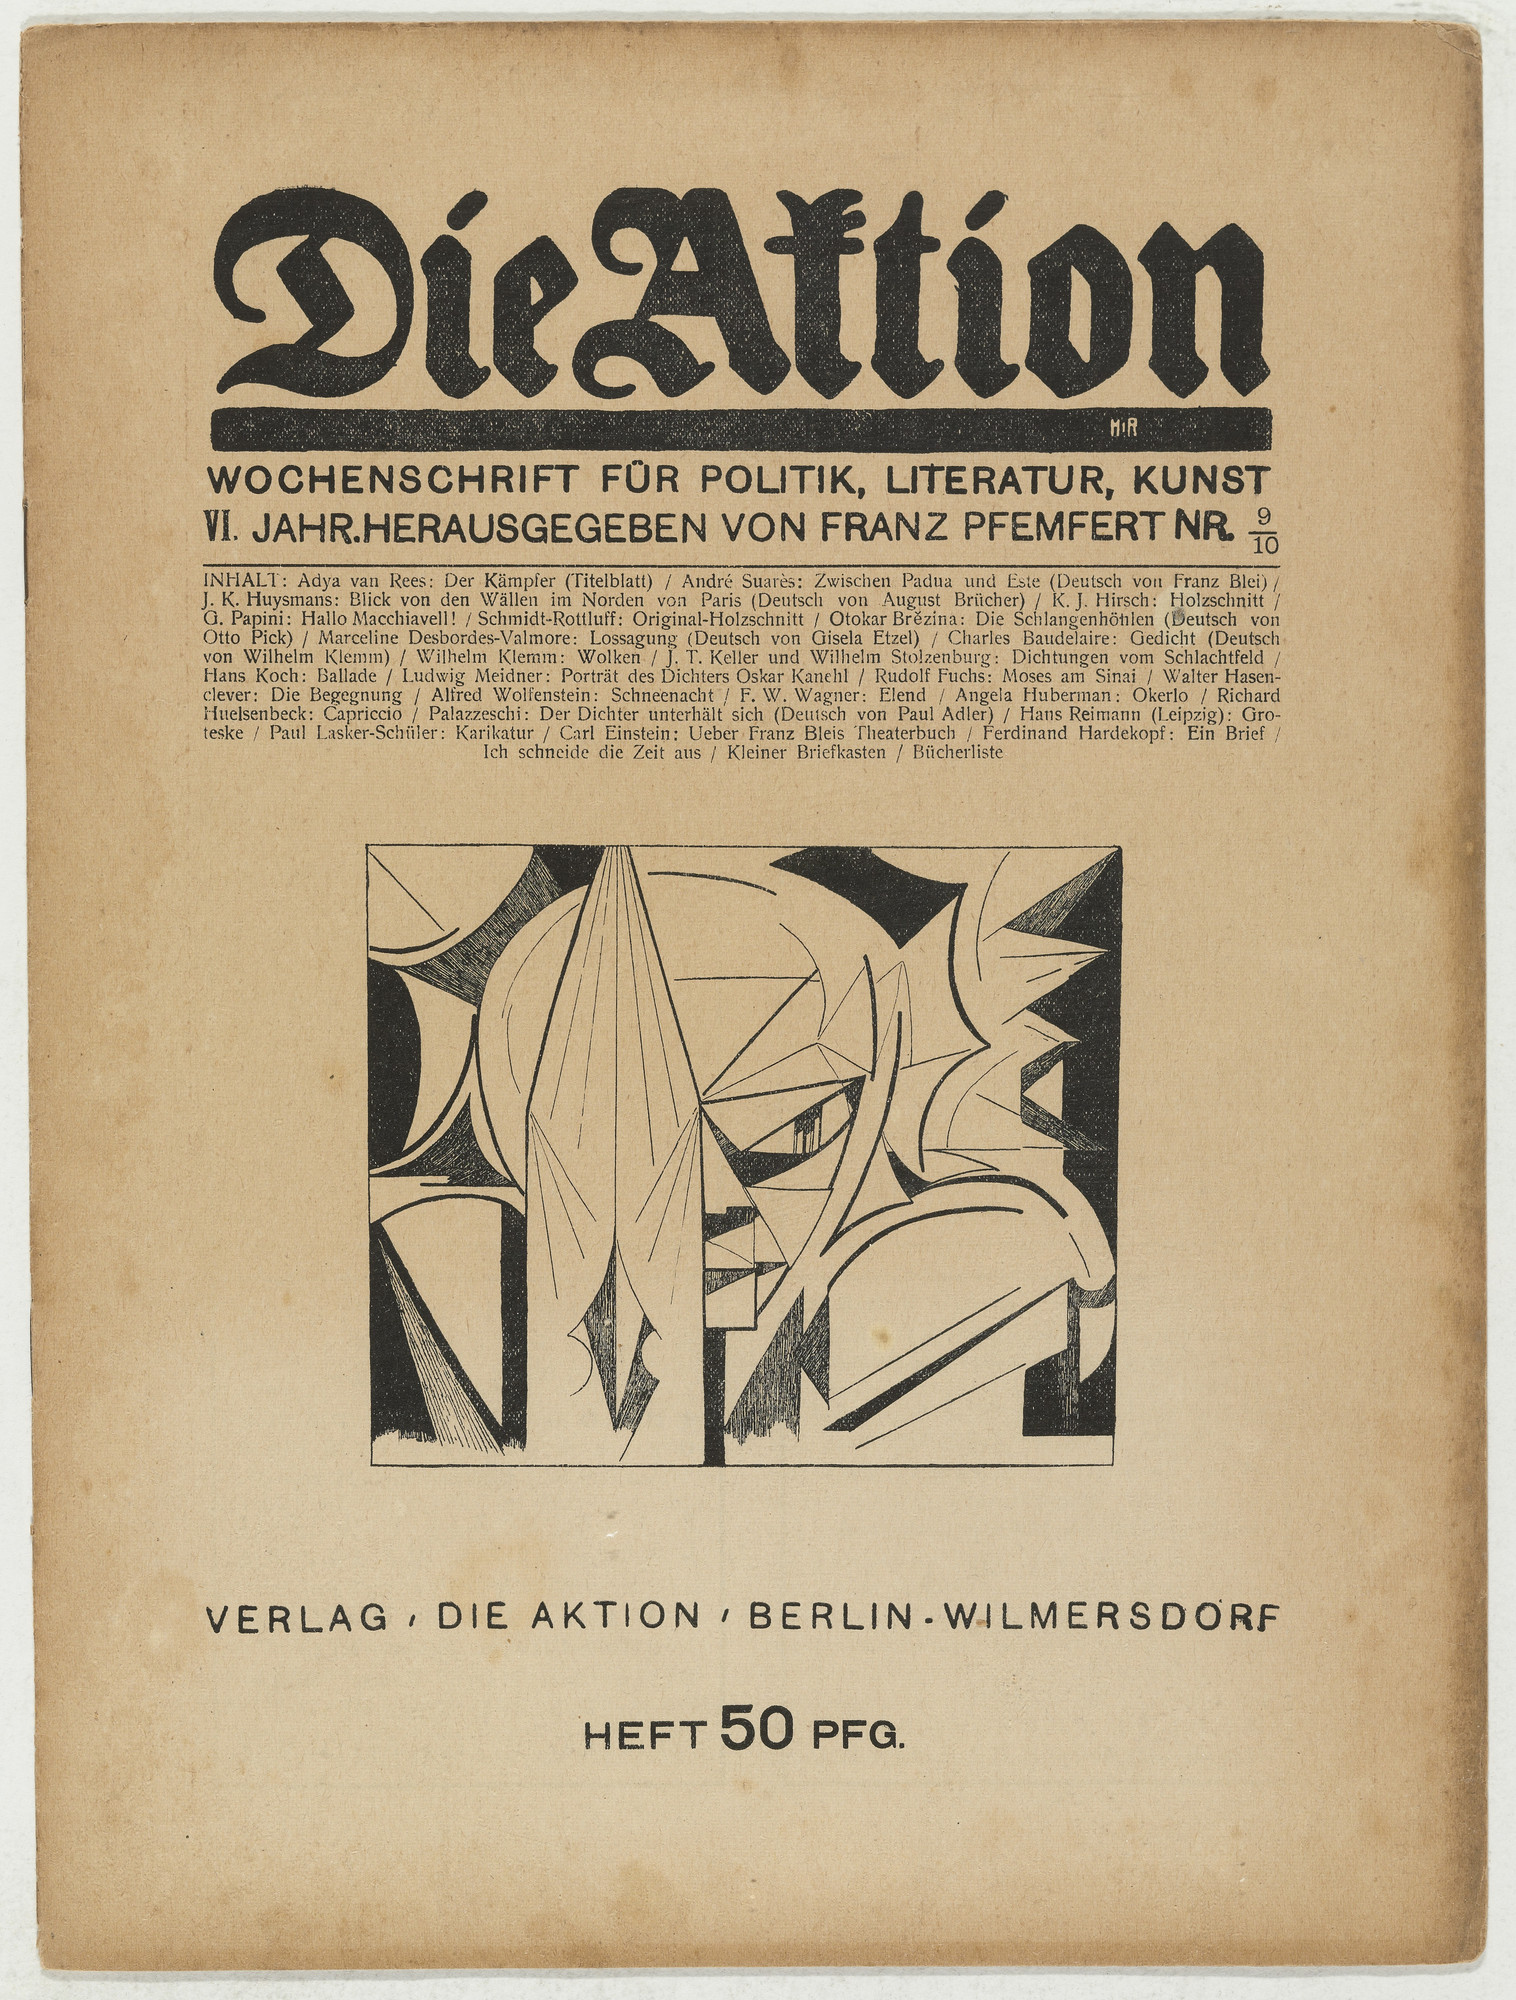 Karl Jacob Hirsch, Karl Schmidt-Rottluff. Die Aktion, vol. 6, no. 9/10. March 4, 1916